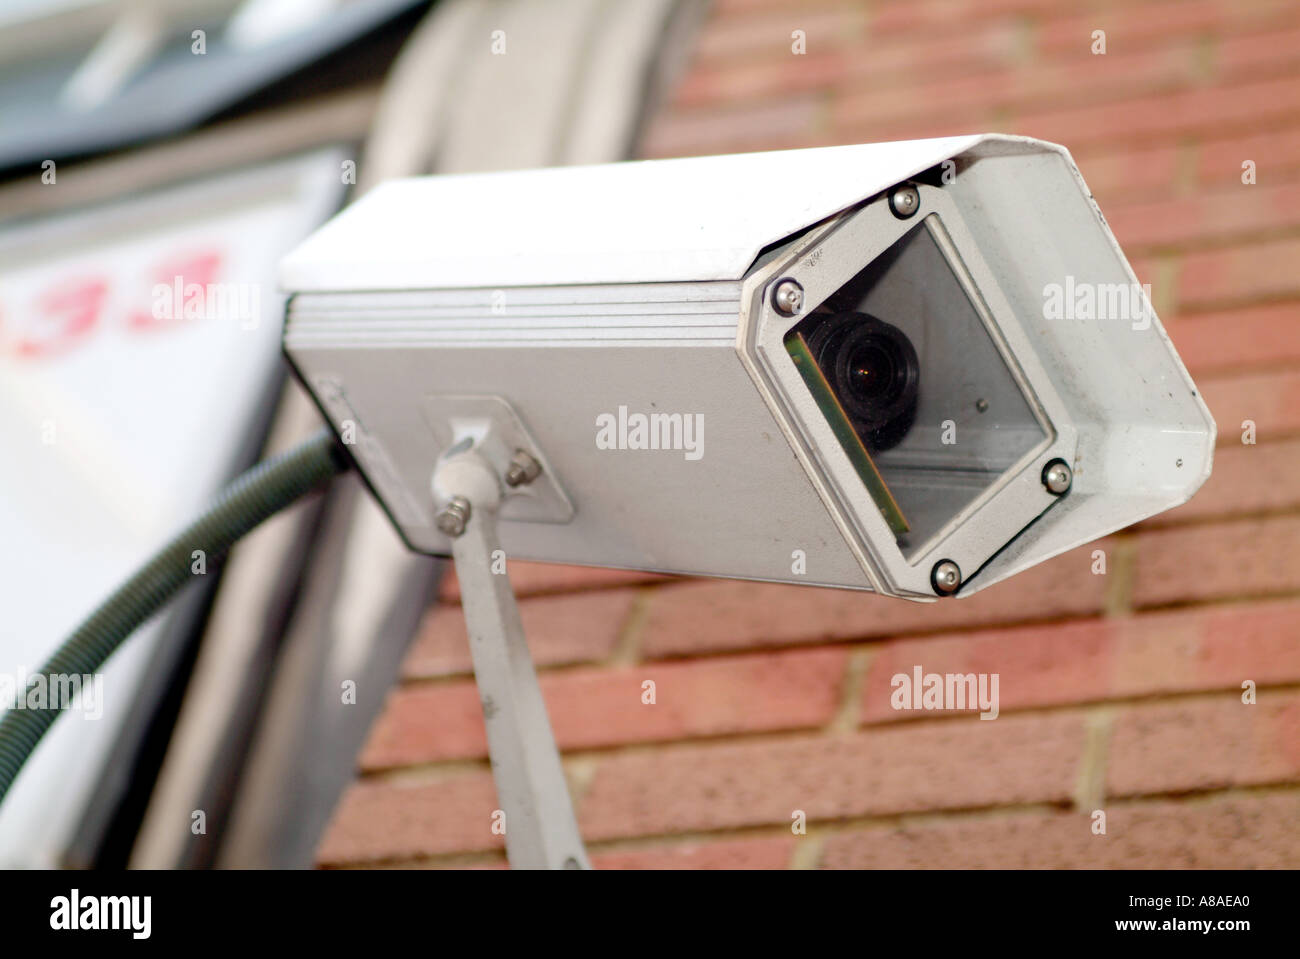 security camera watching you big brother 1984 george orwell survailance cctv closed circuit - Stock Image